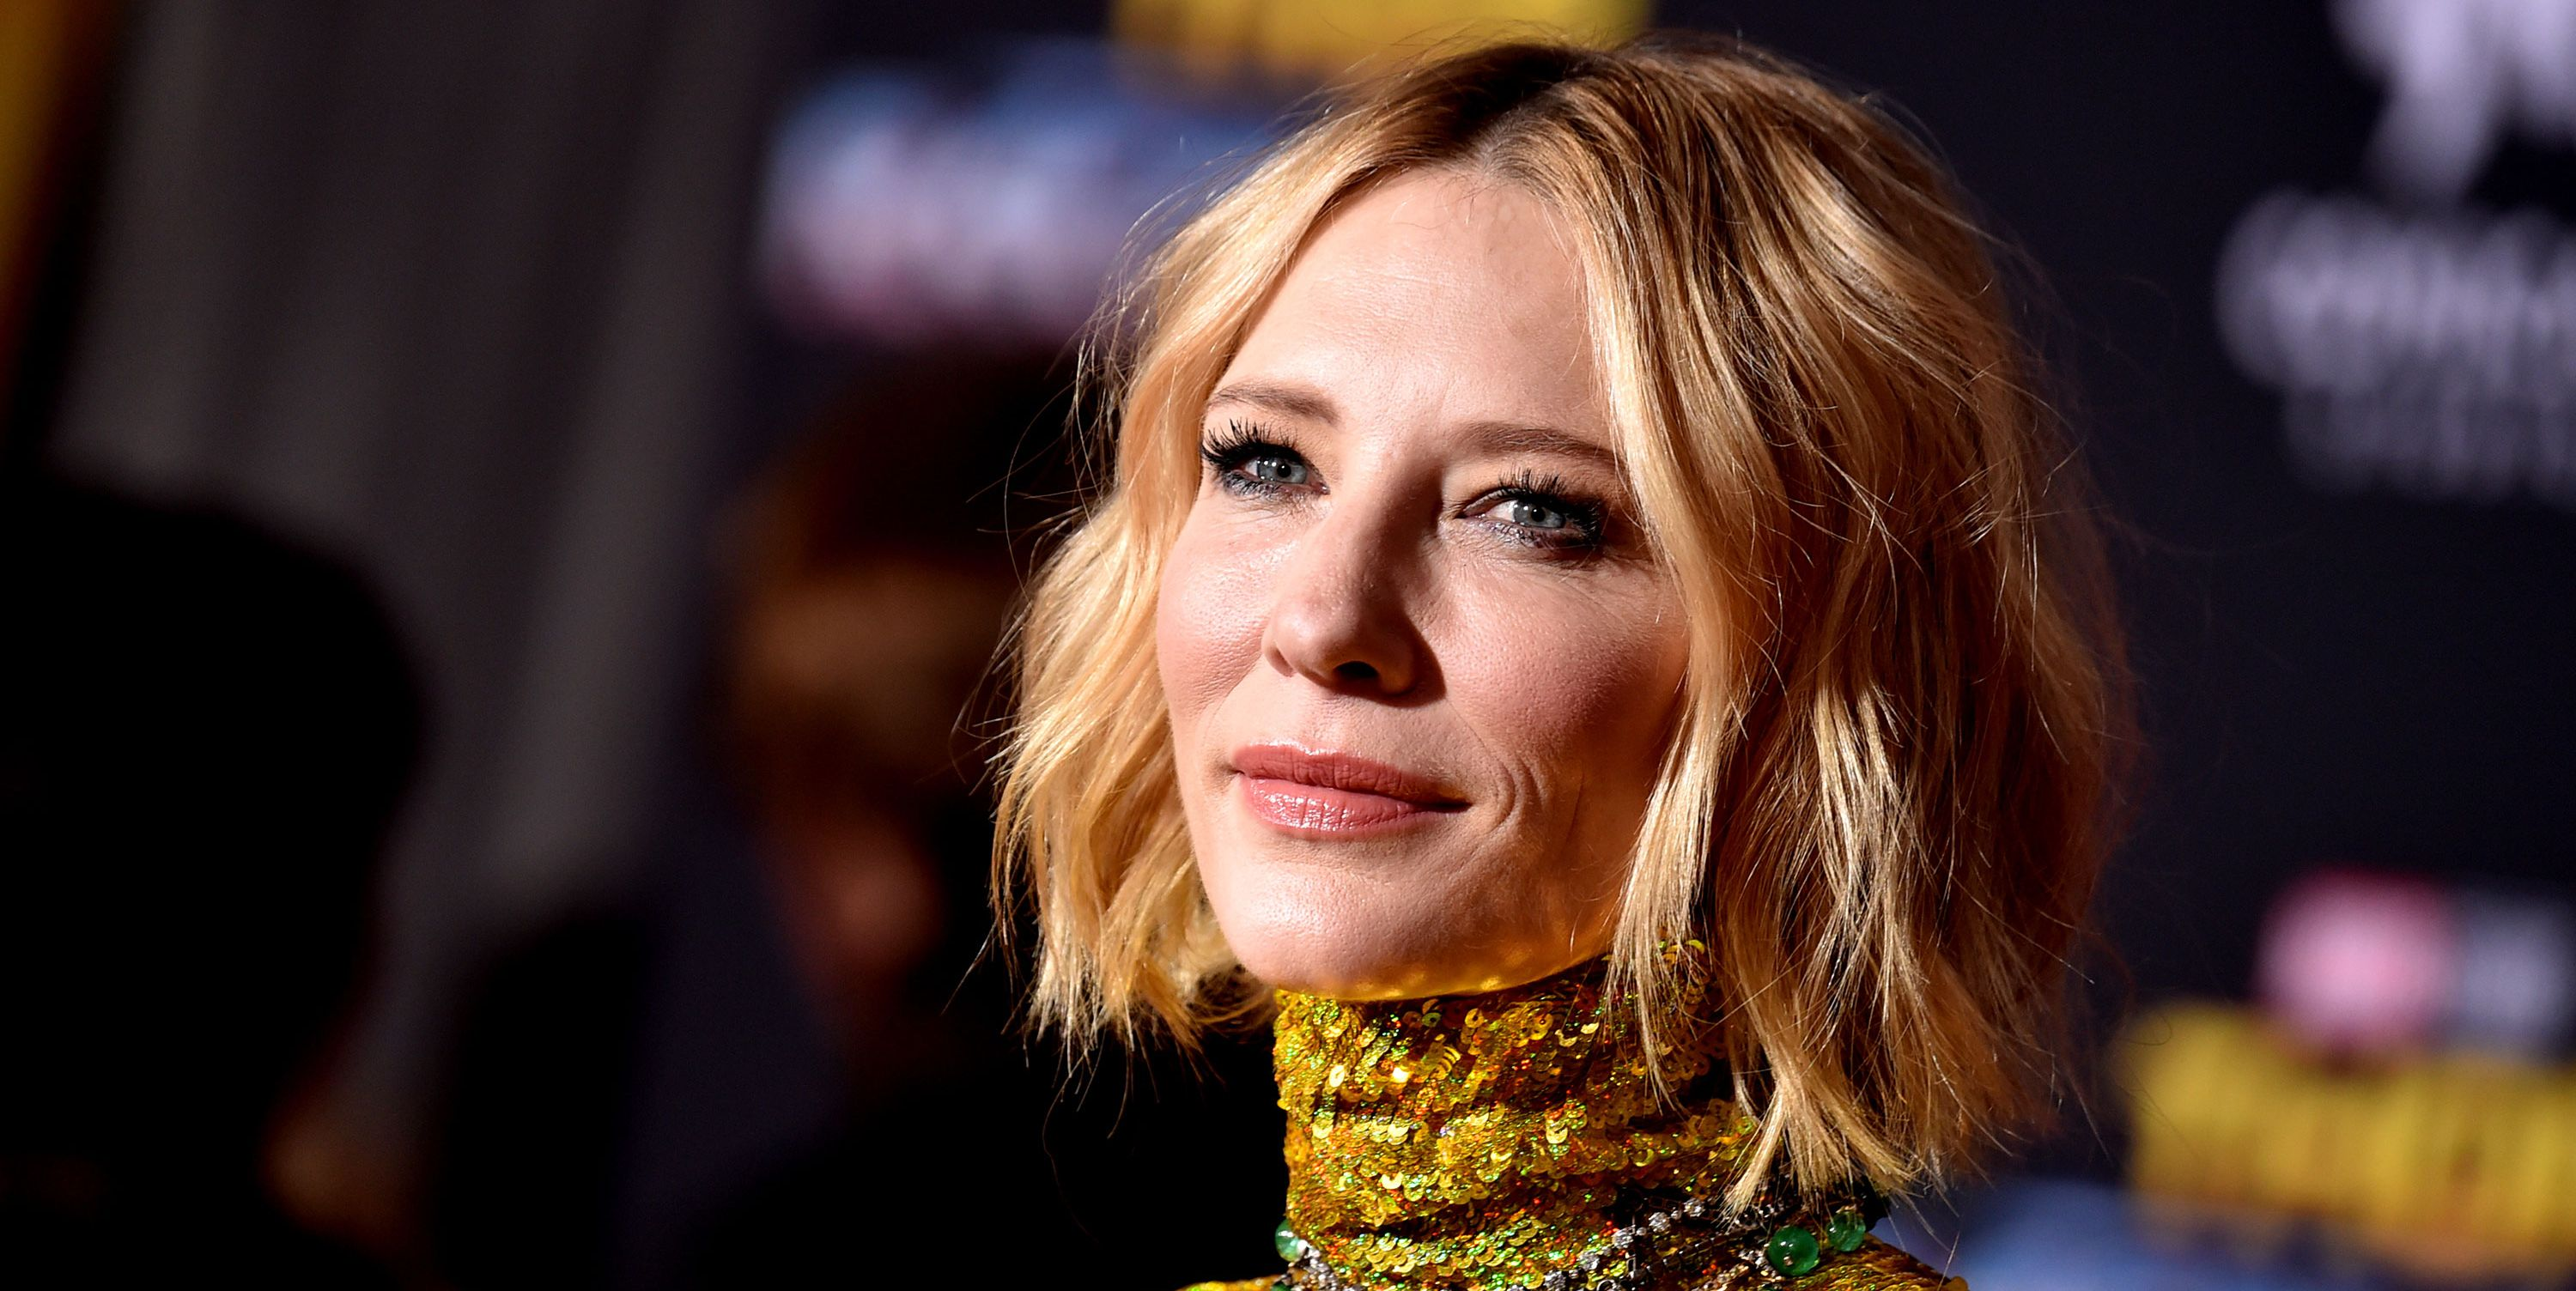 Cate Blanchett at Thor premiere wearing gucci